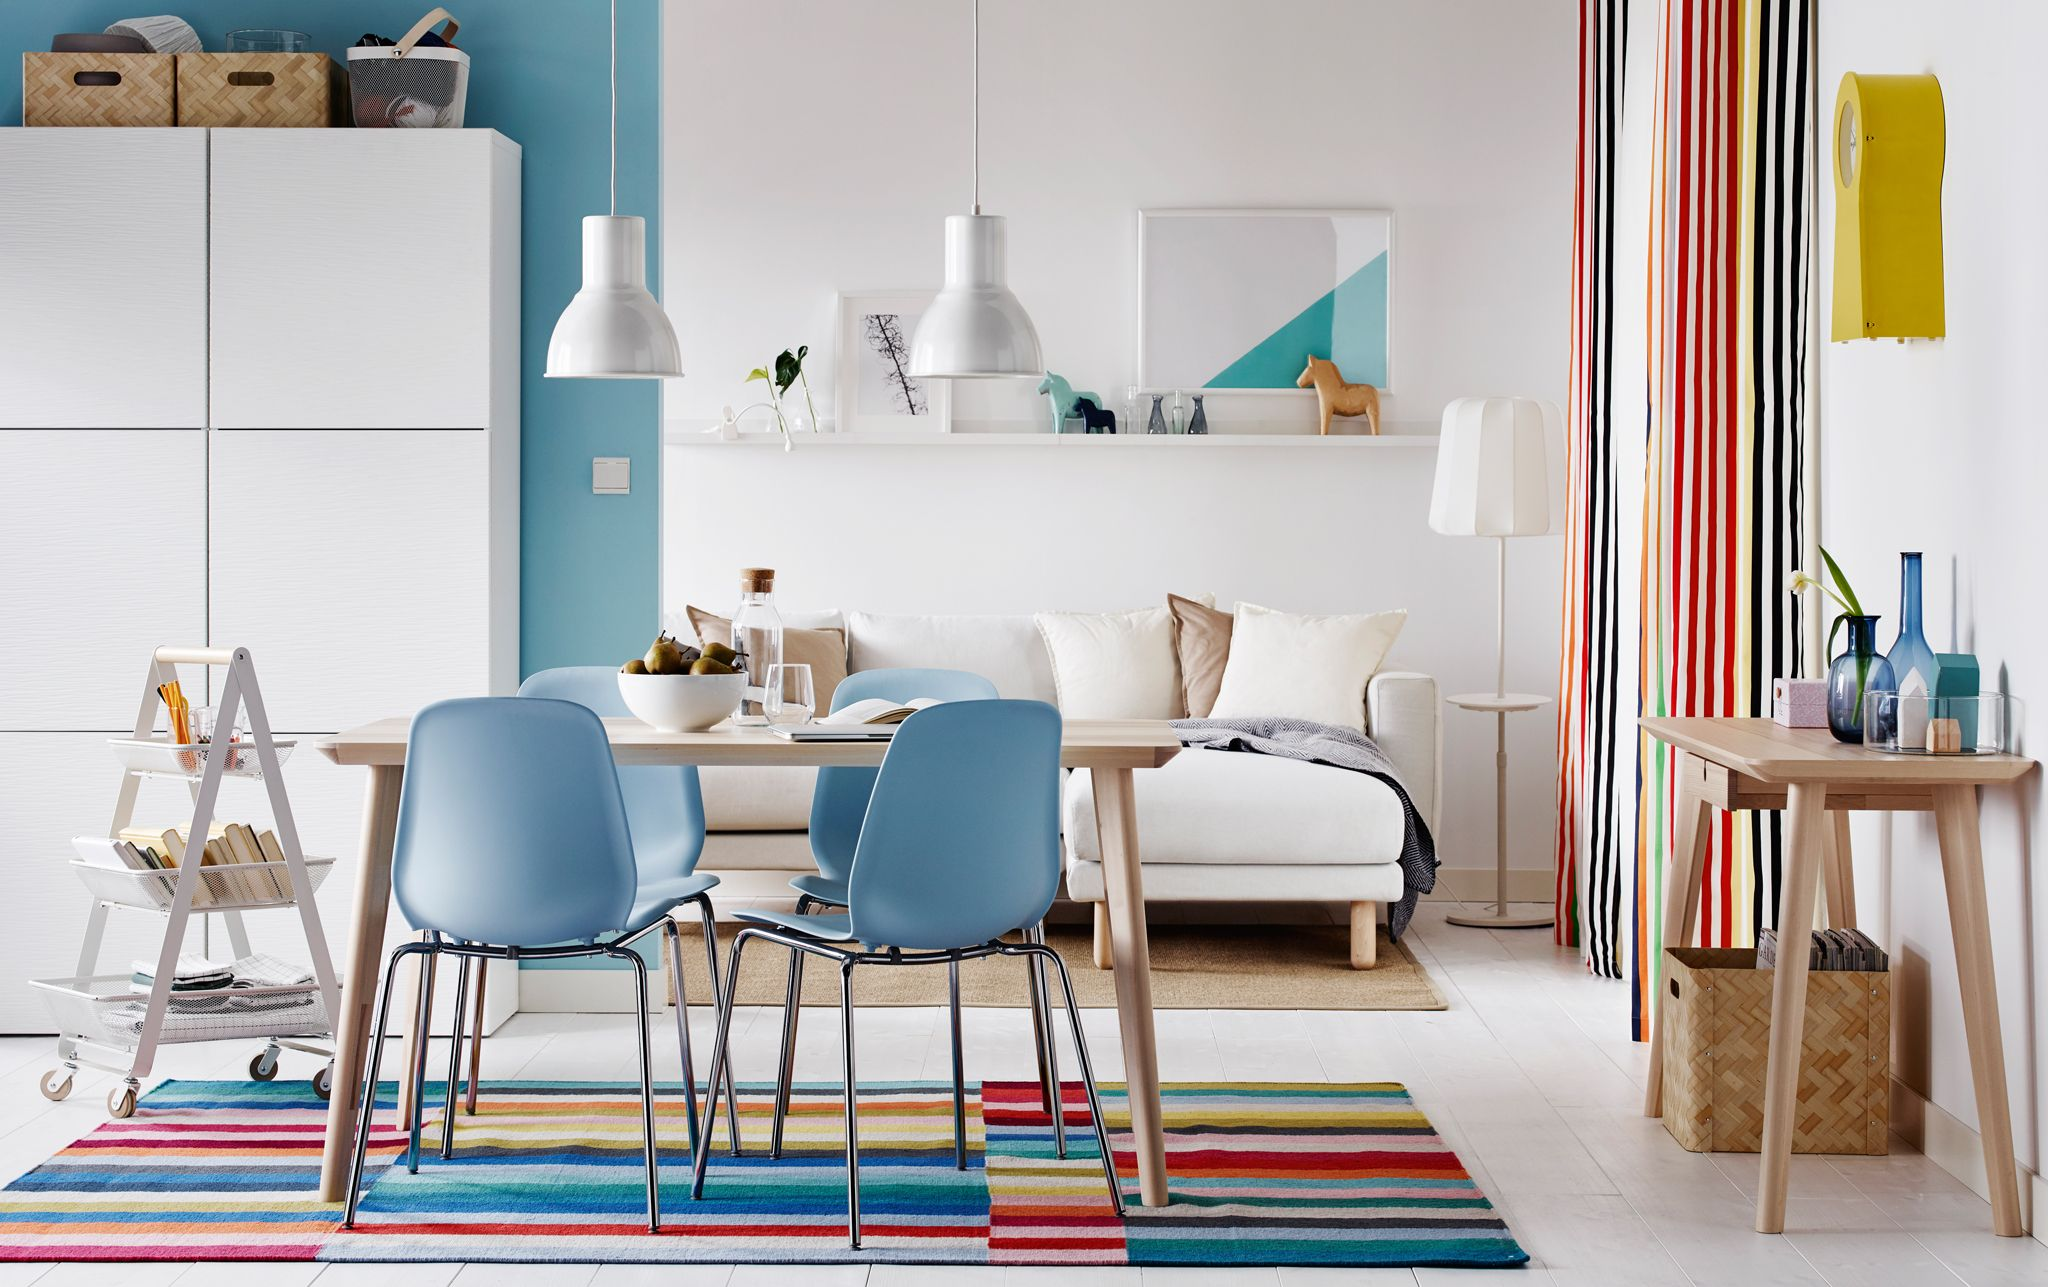 dining room furniture amp ideas table chairs ikea creating versatile on ultimate home heating systems, modern villa design, cutting edge home design, 3d home design, advanced home design, ultimate dream home,